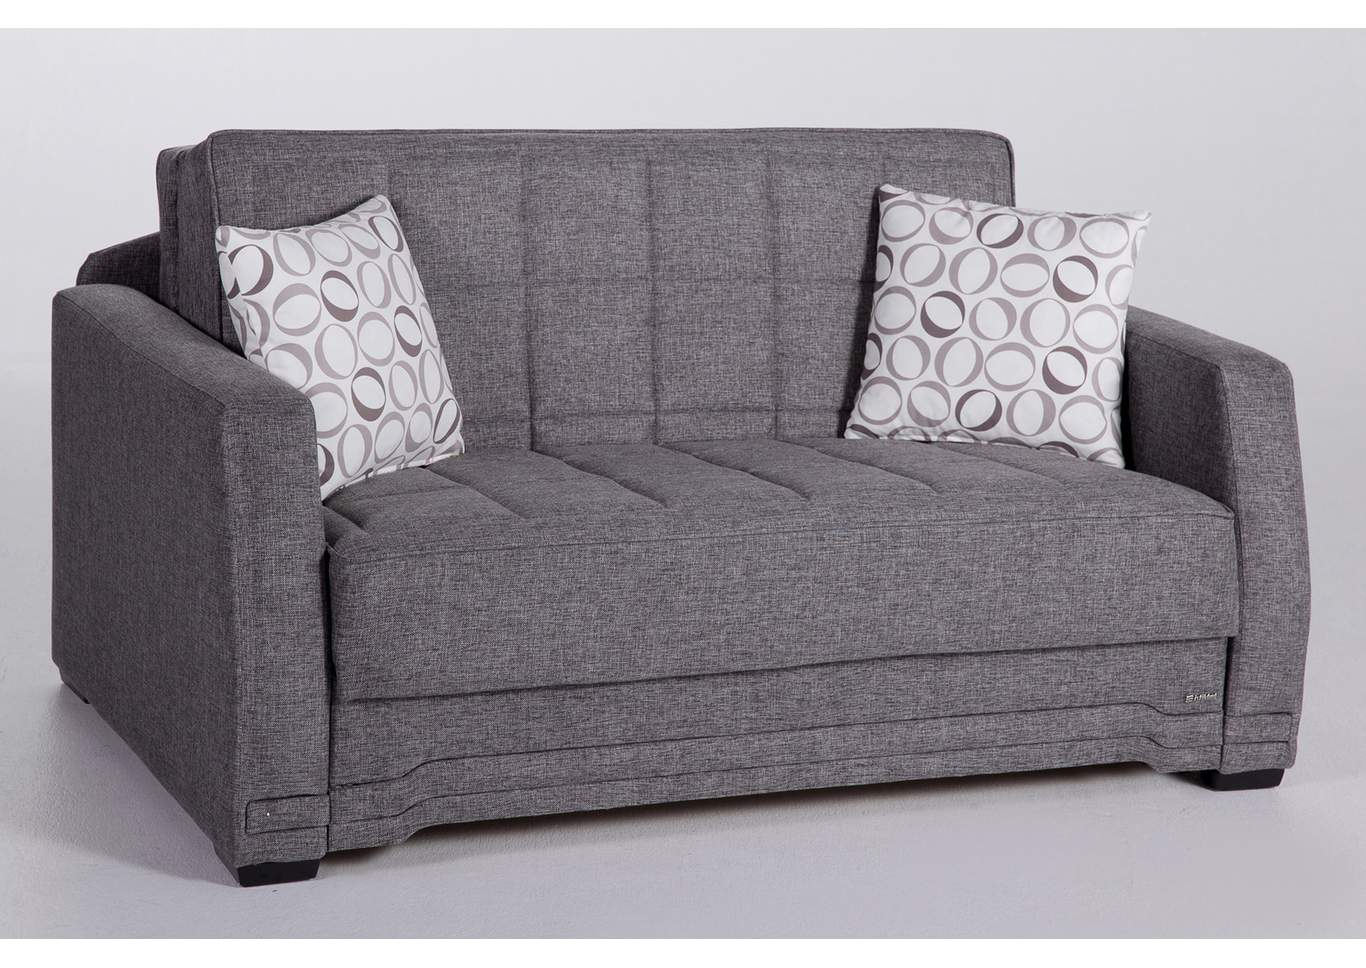 Valerie Diego Gray Love Seat W/ Storage,Hudson Furniture & Bedding